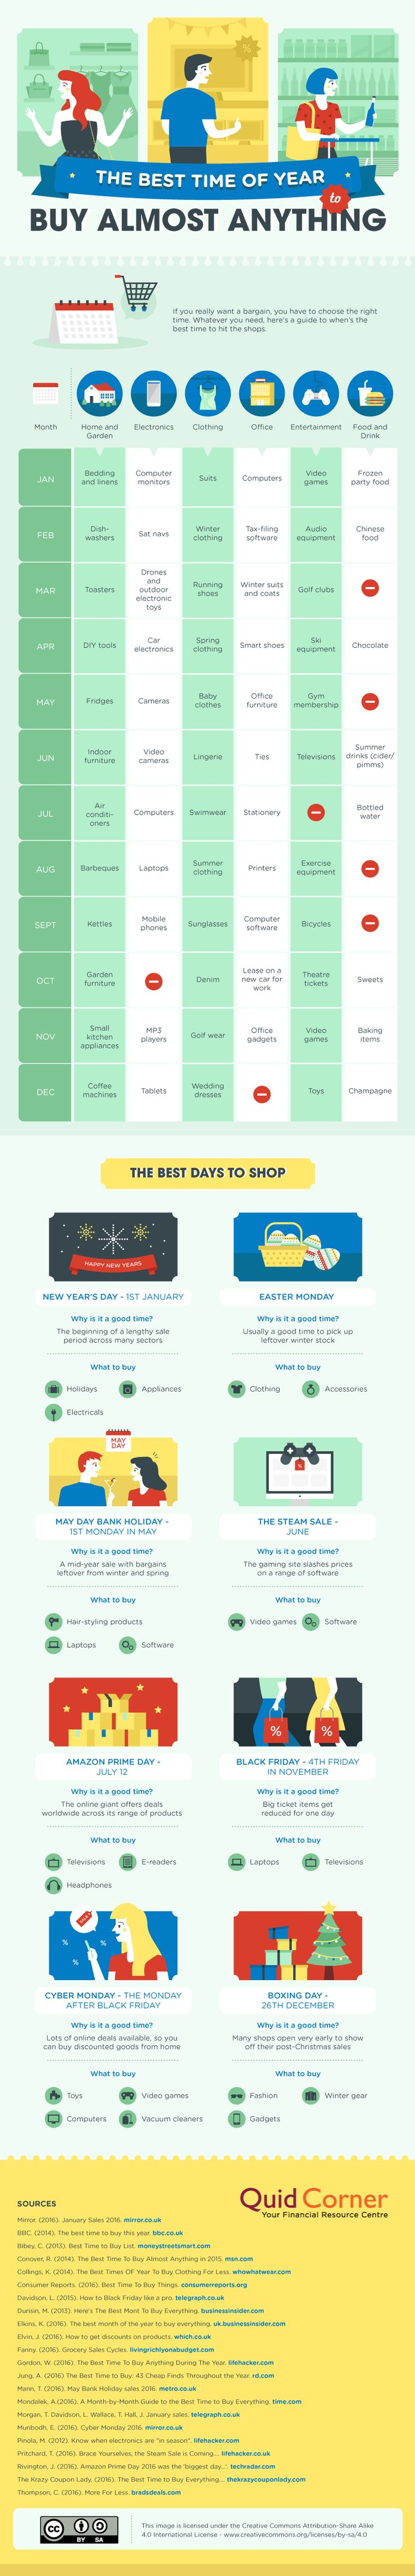 The Best Time of Year to Buy Almost Anything #Infographic #Retail